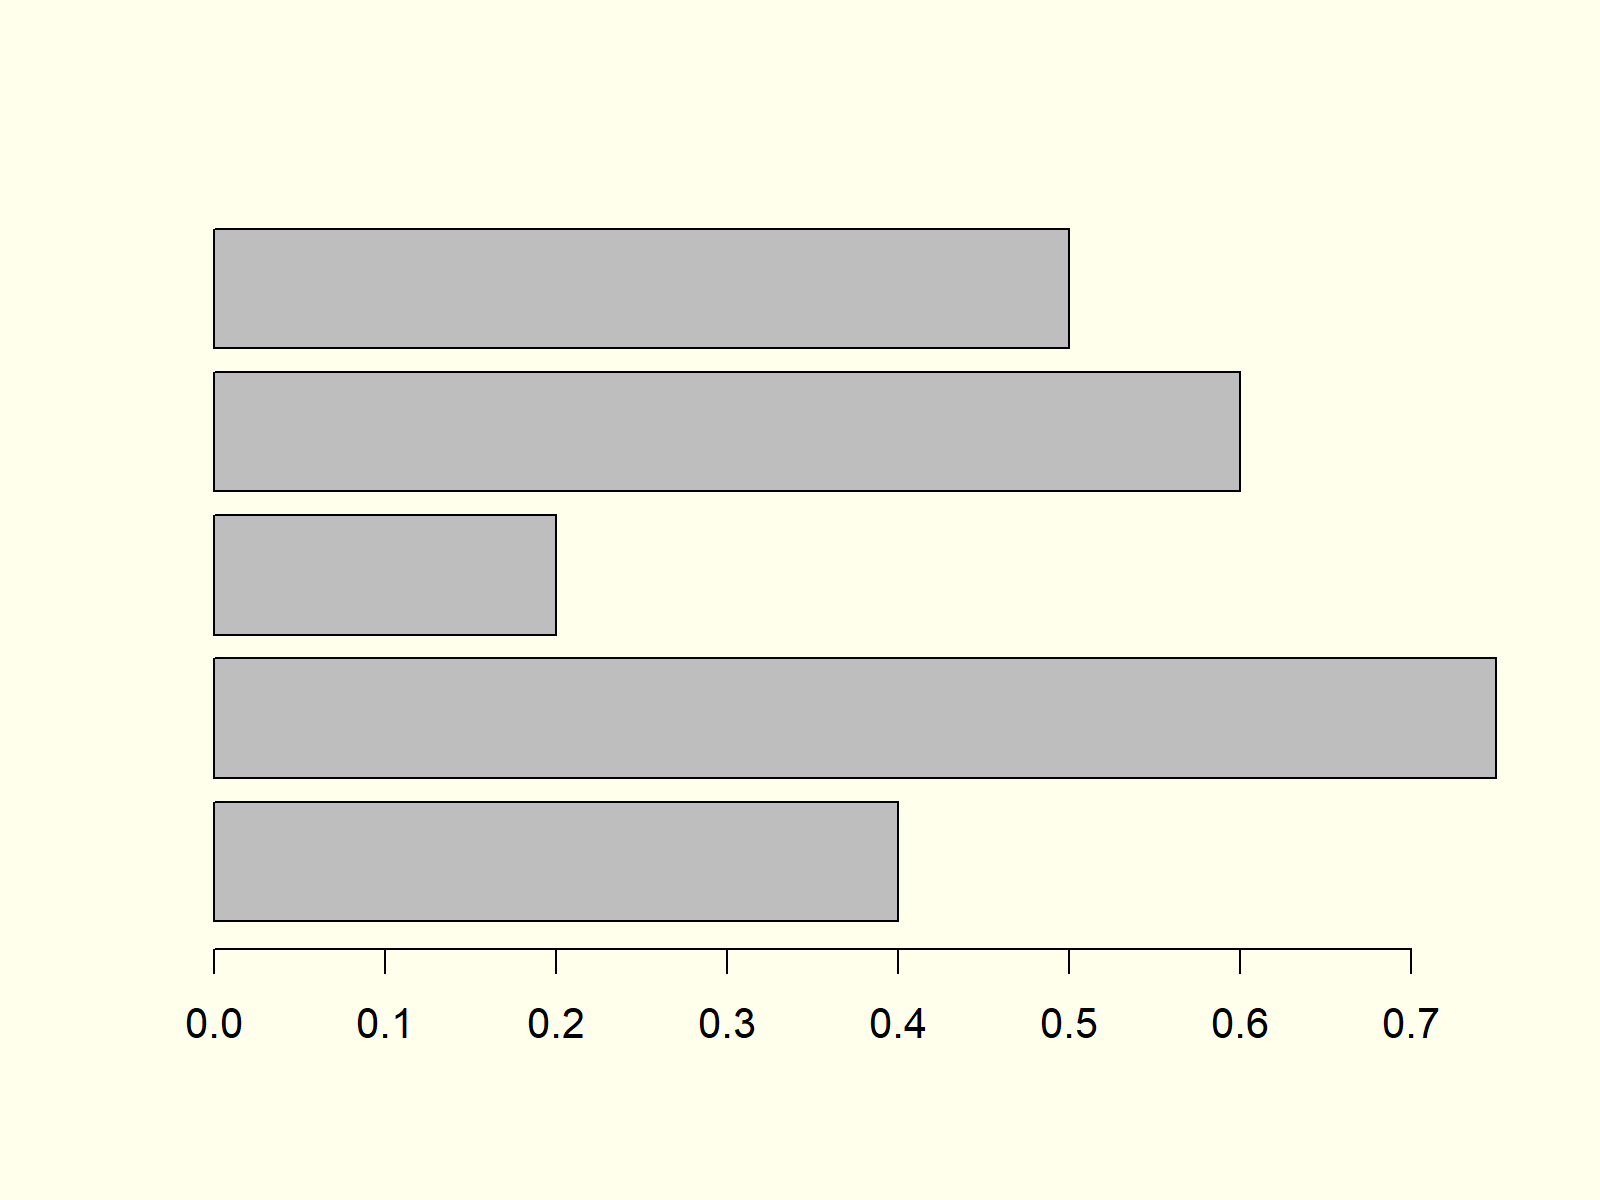 Horizontal Barchart in Base R